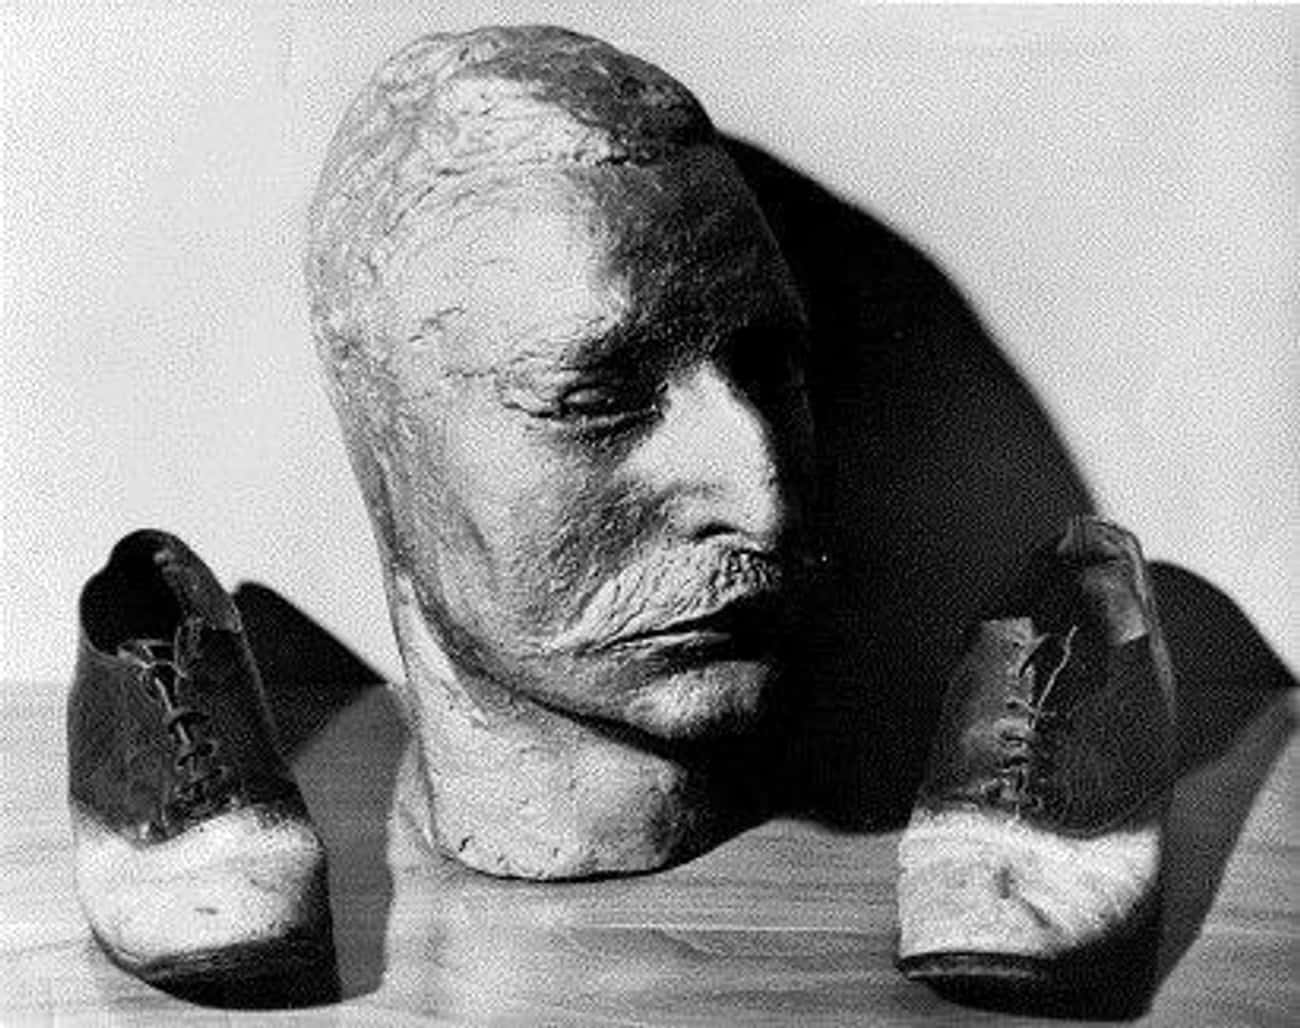 Mask And Skin Shoes Of Cattle  is listed (or ranked) 3 on the list 15 Unsettling Photos of the Wild West